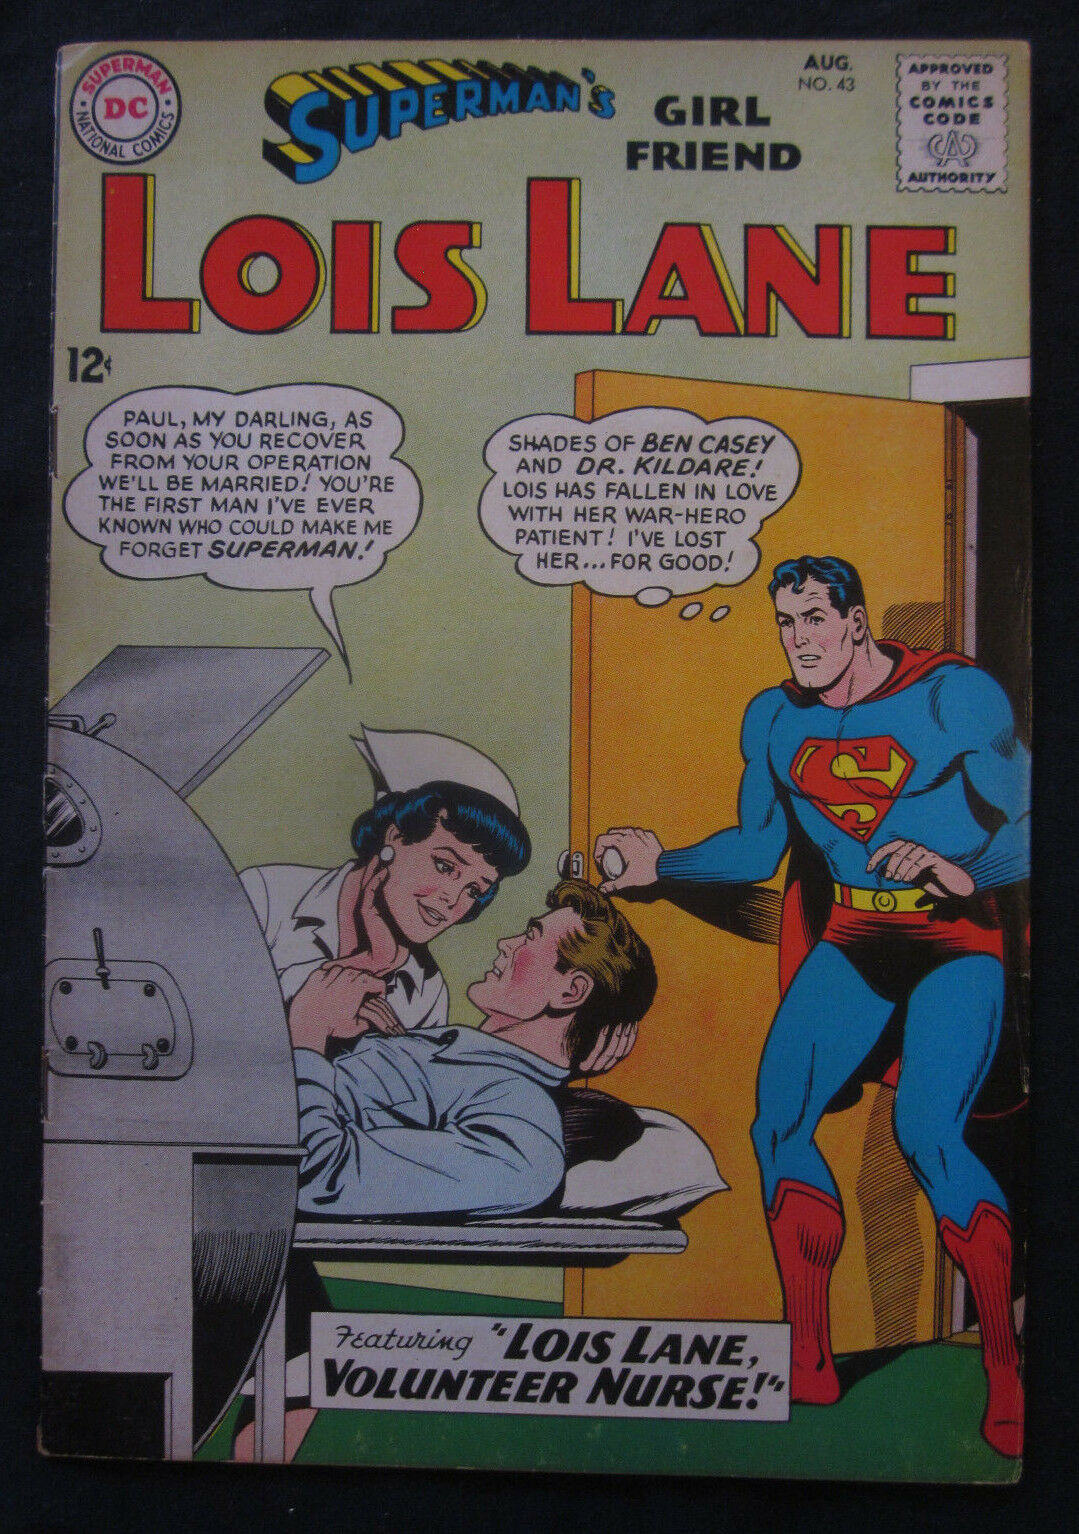 Supermans girl friend lois lane 43 aug 1963 dc ebay resntentobalflowflowcomponenttechnicalissues thecheapjerseys